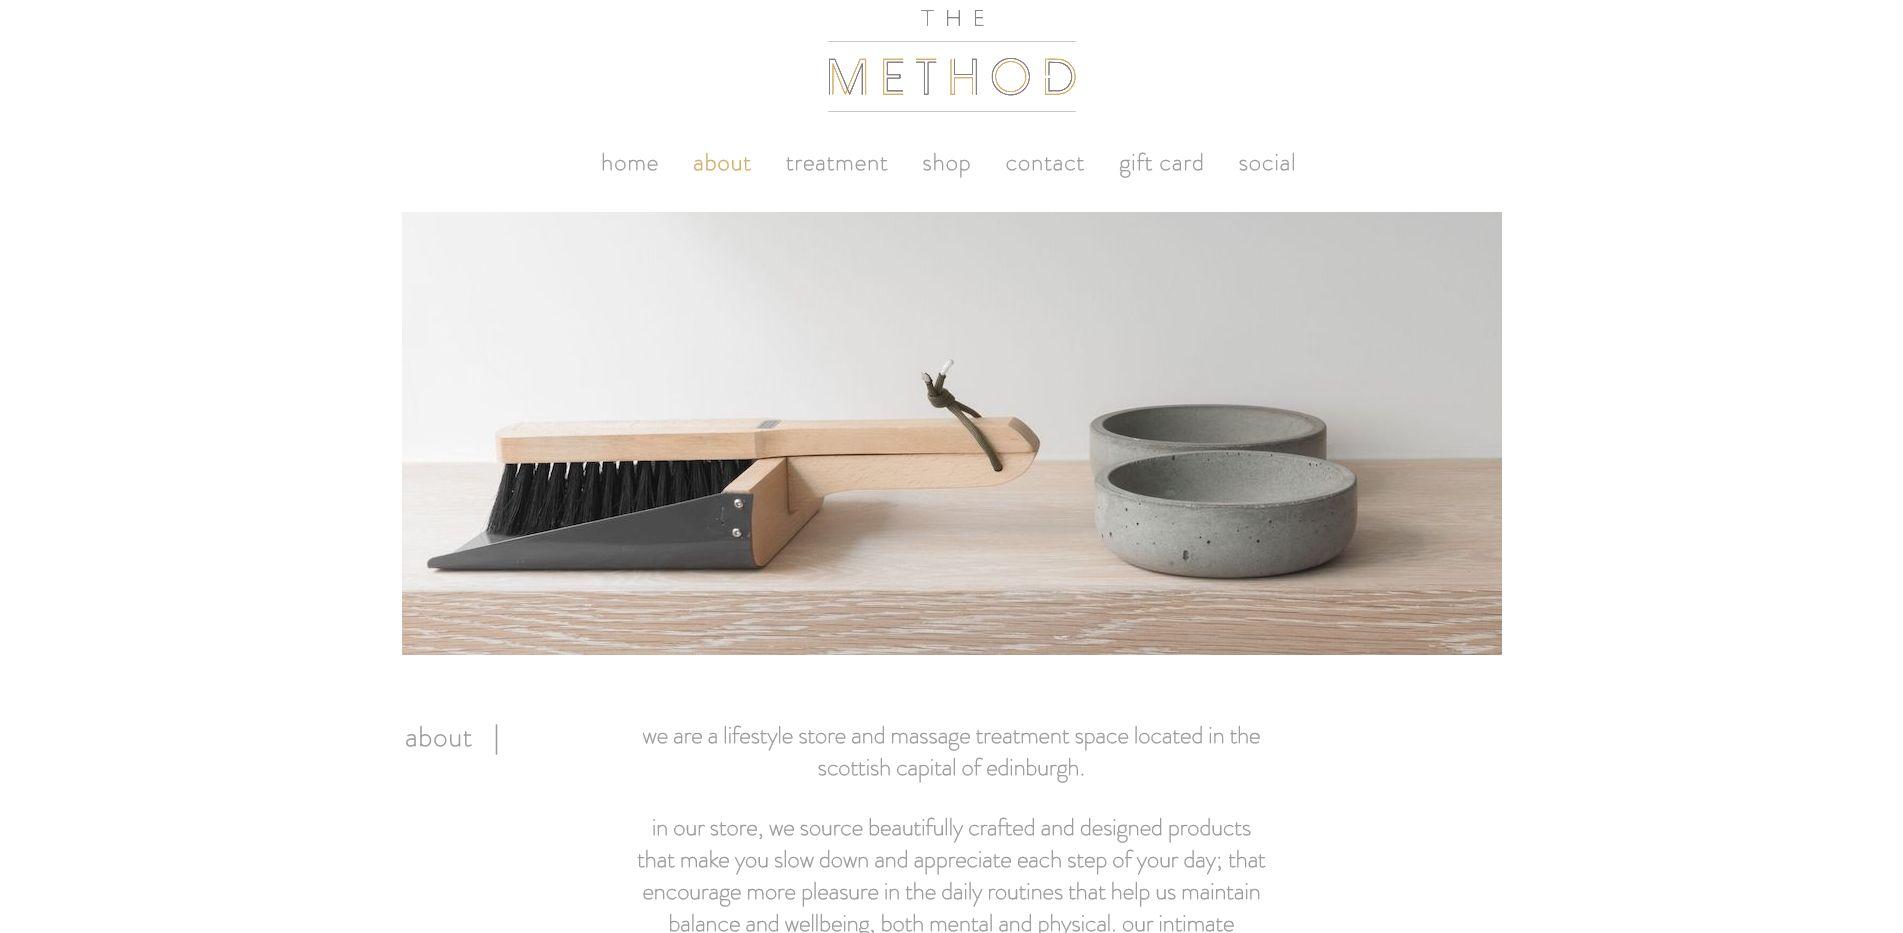 About-The-Method